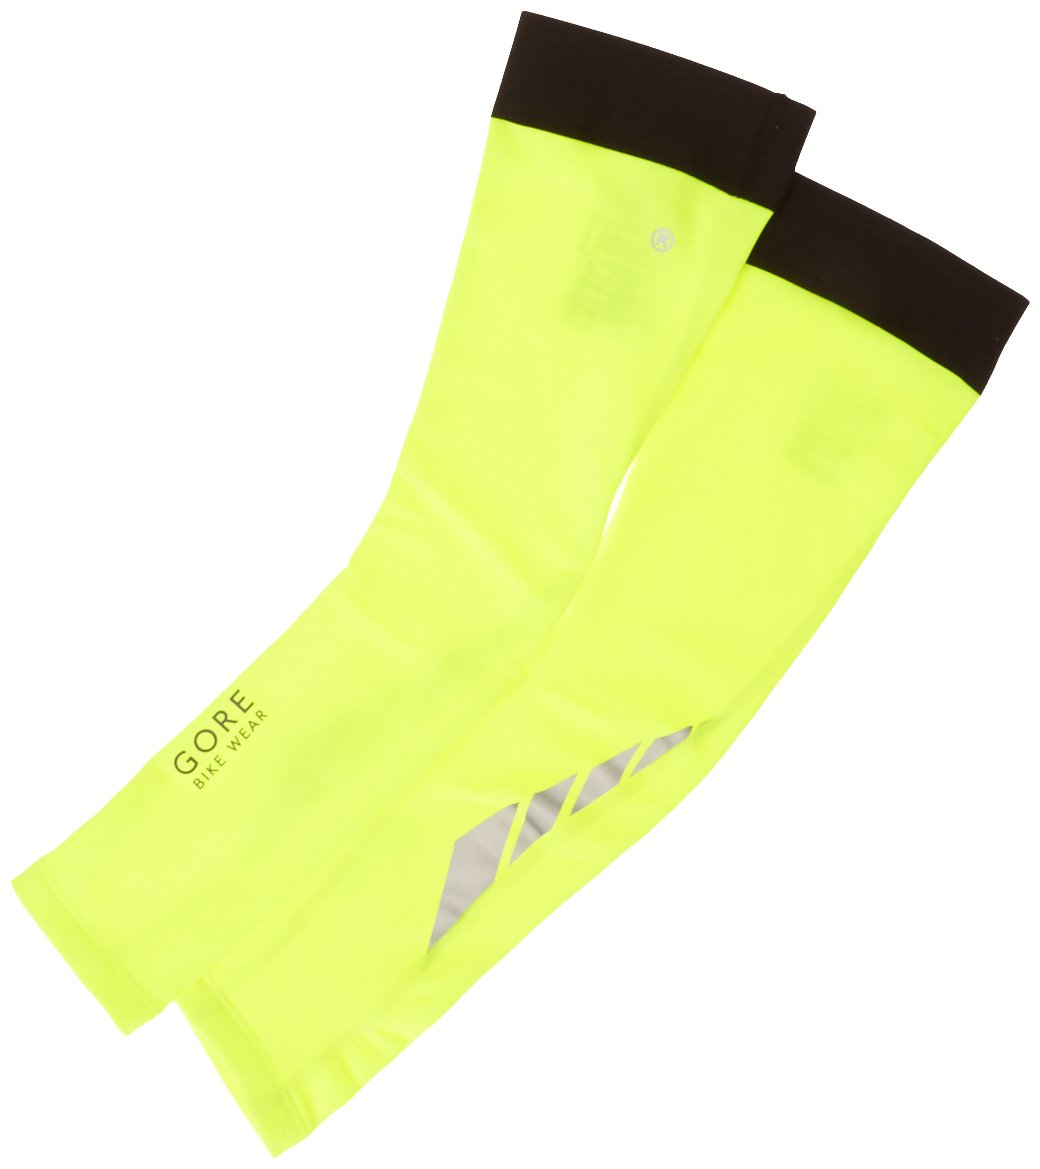 GORE BIKE WEAR Visibility Thermo Arm Warmers, ATVISA